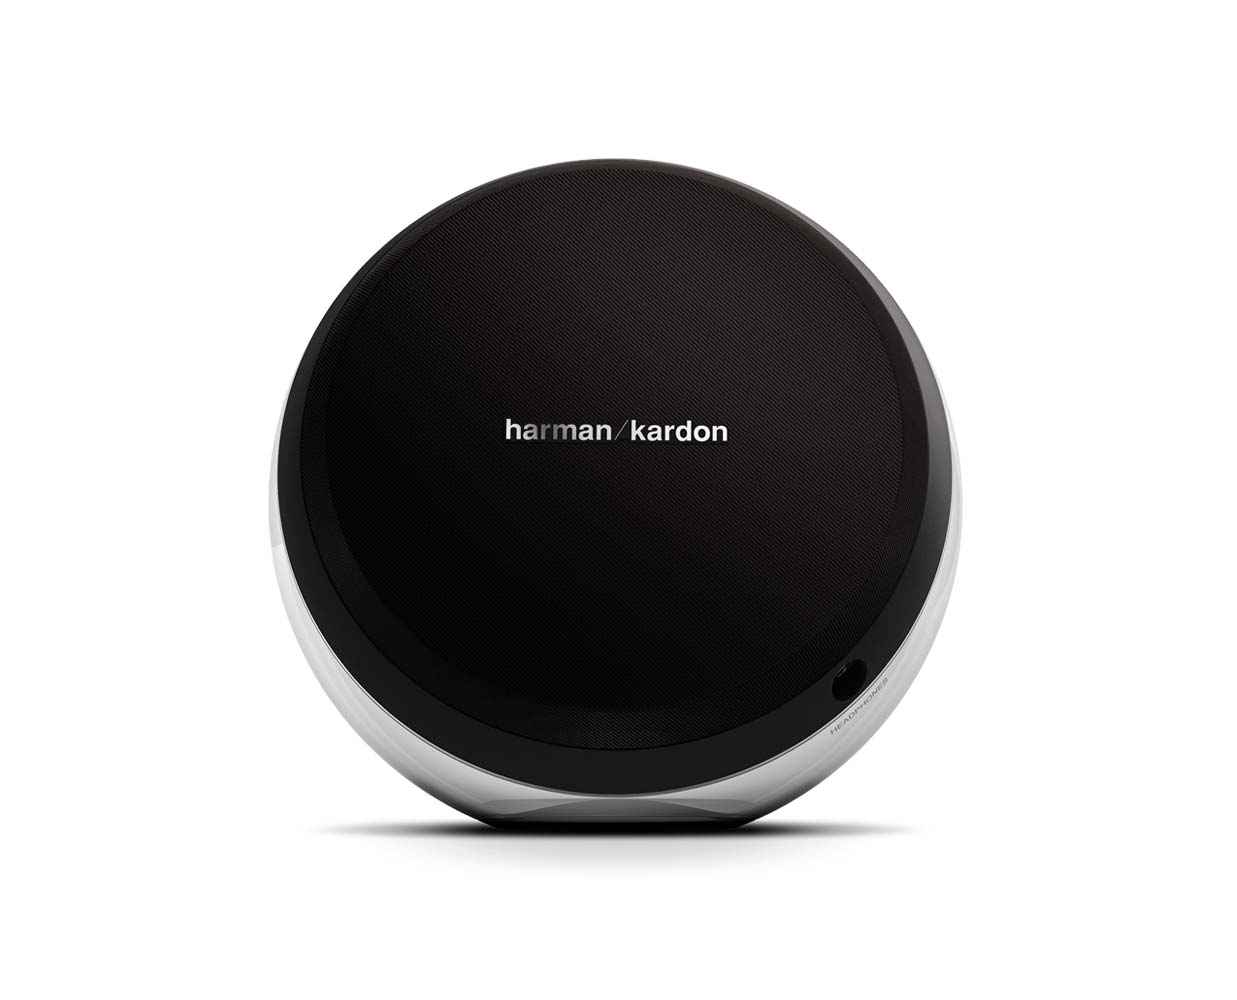 Спикеры: Harman Kardon Nova Black, фотография №1